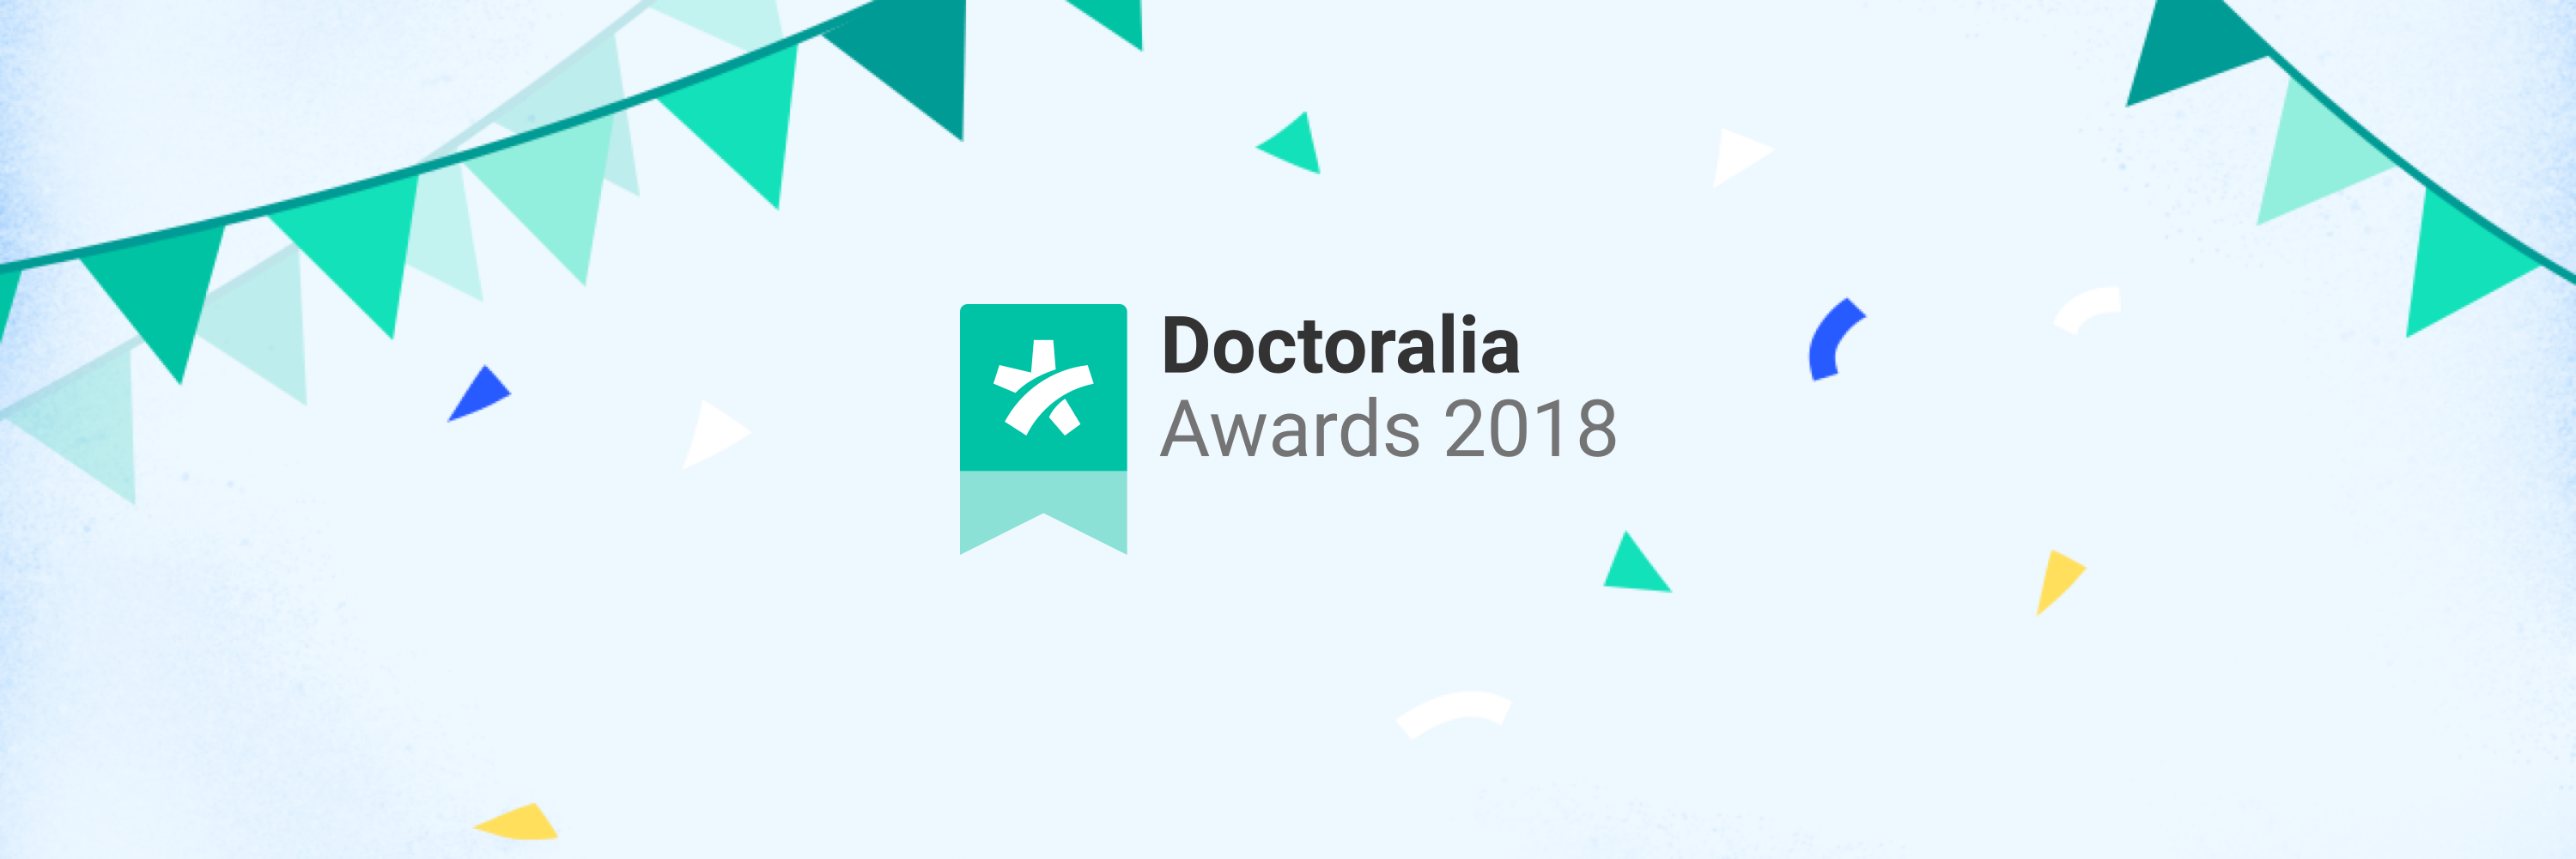 Doctoralia Awards 2018 nacional